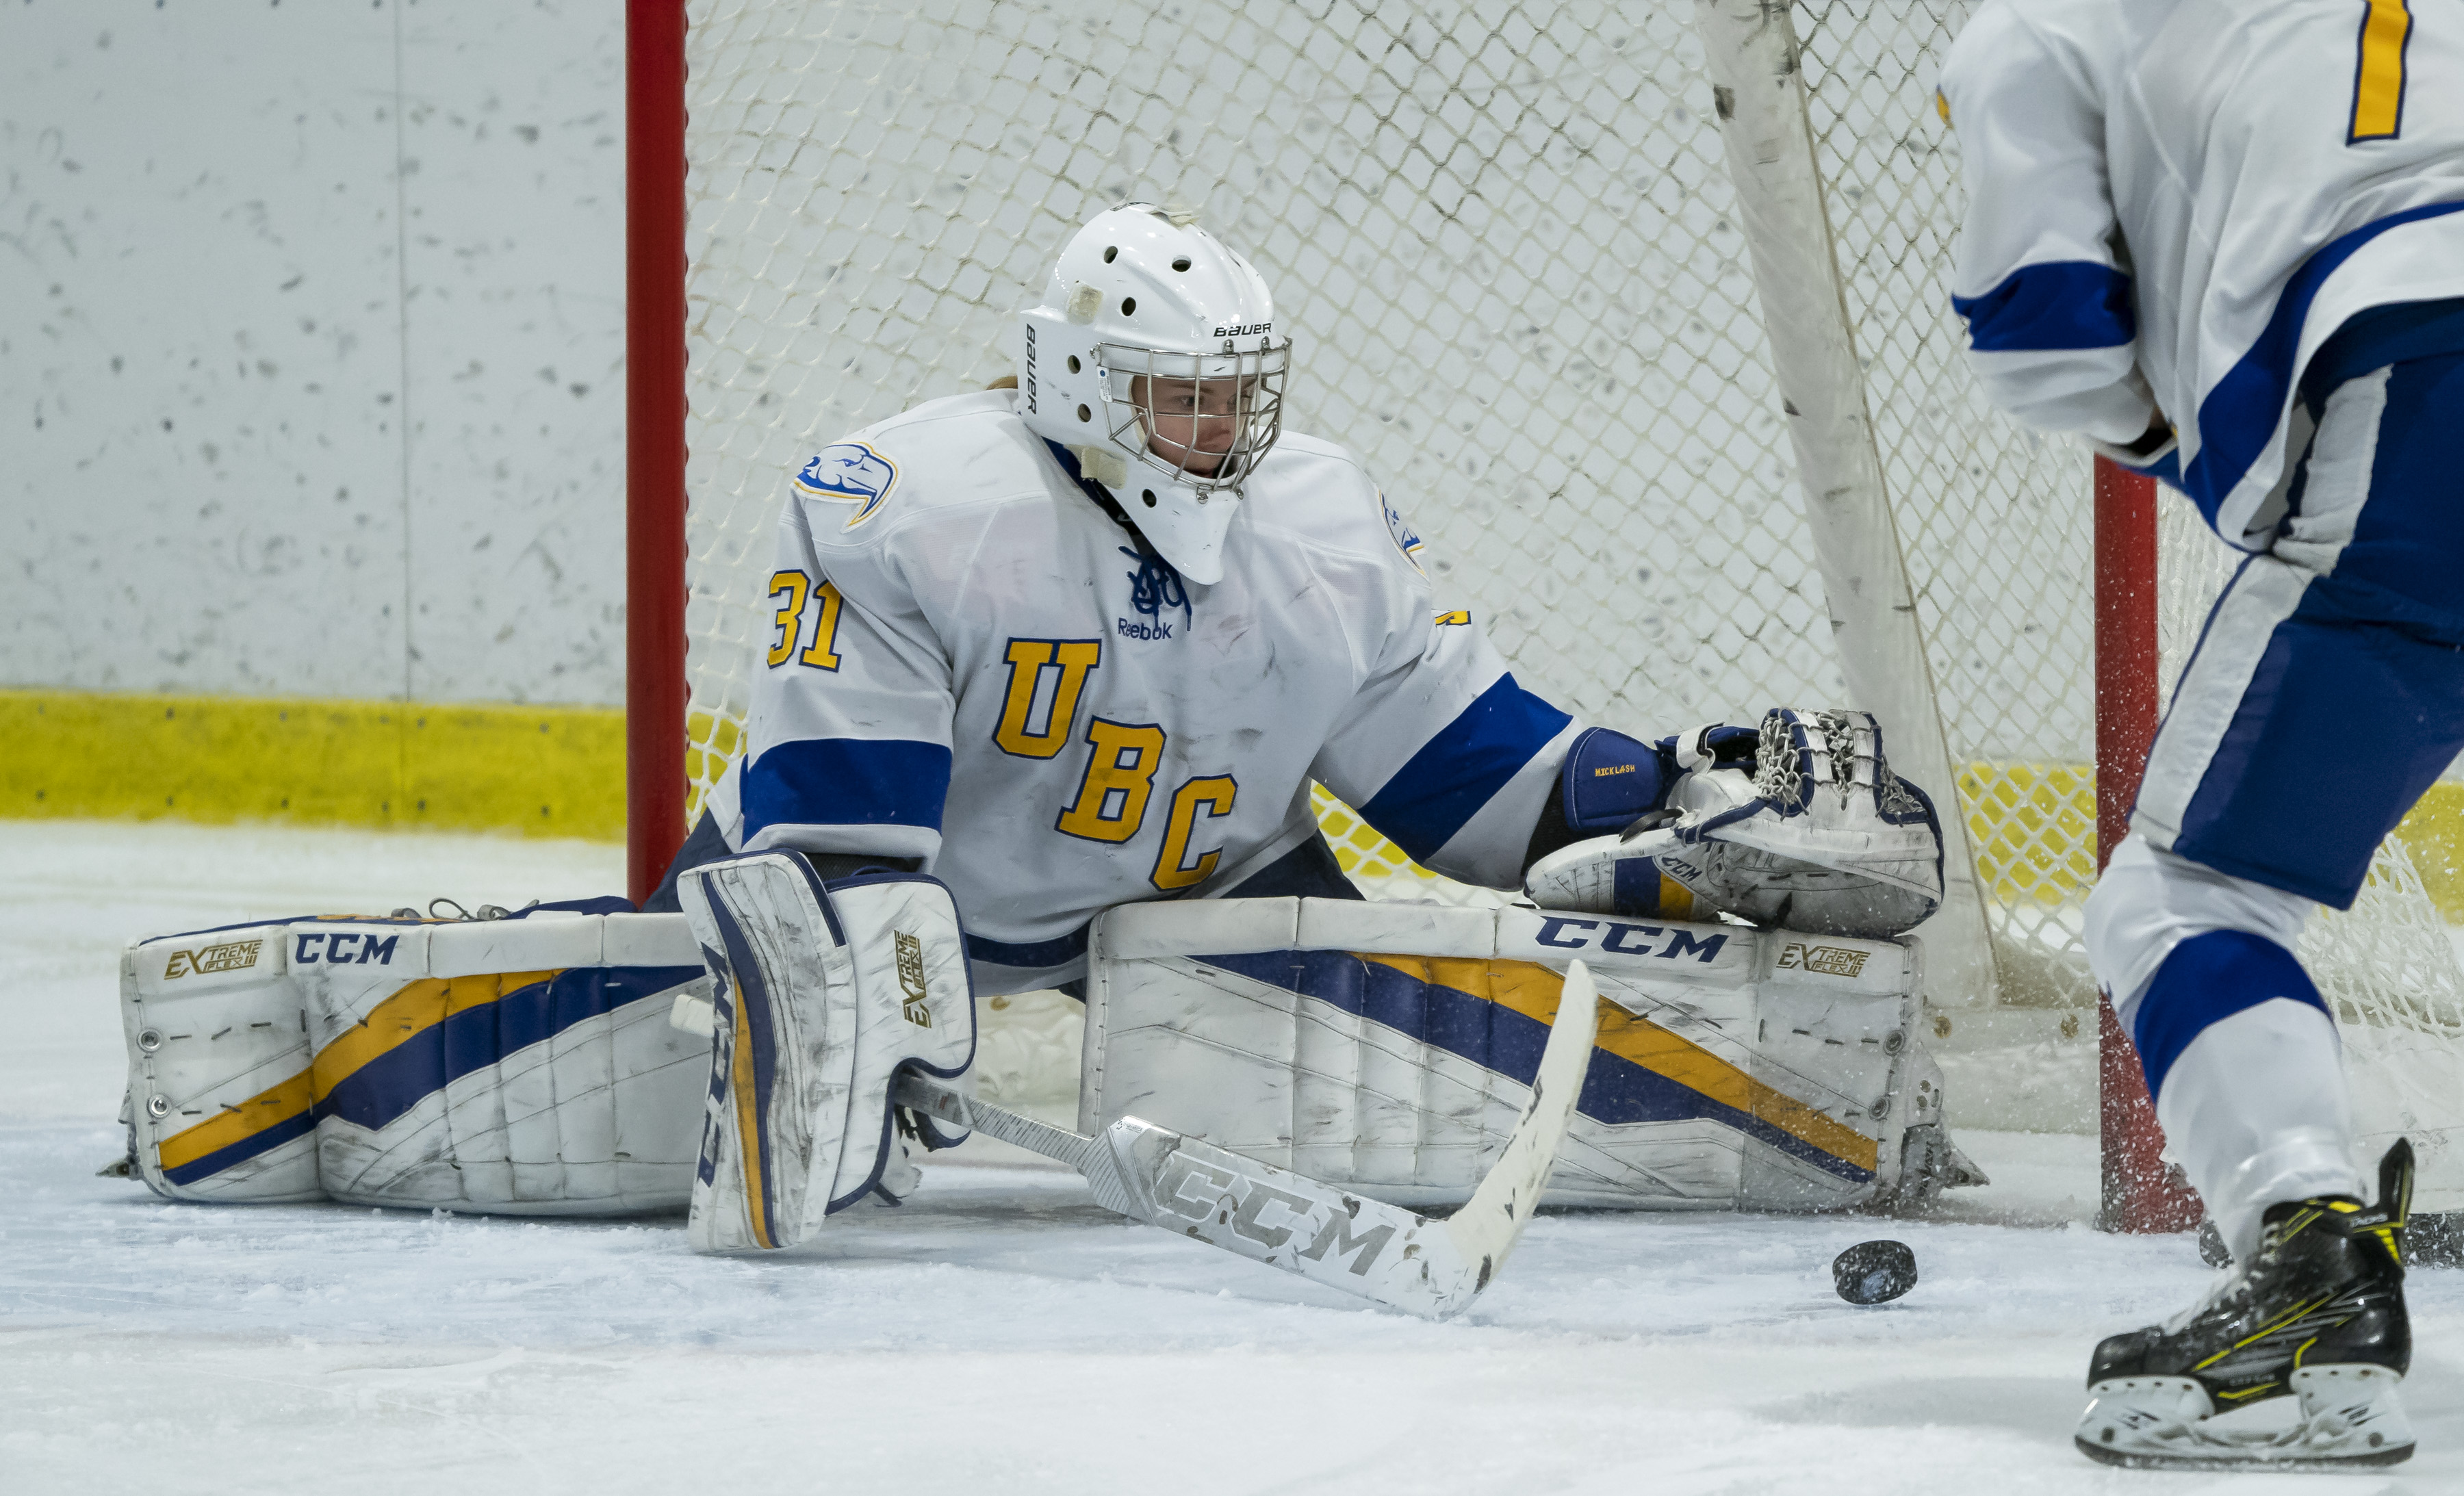 Micklash has been one of the best goalies in the country during her four seasons playing for the UBC Thunderbirds.